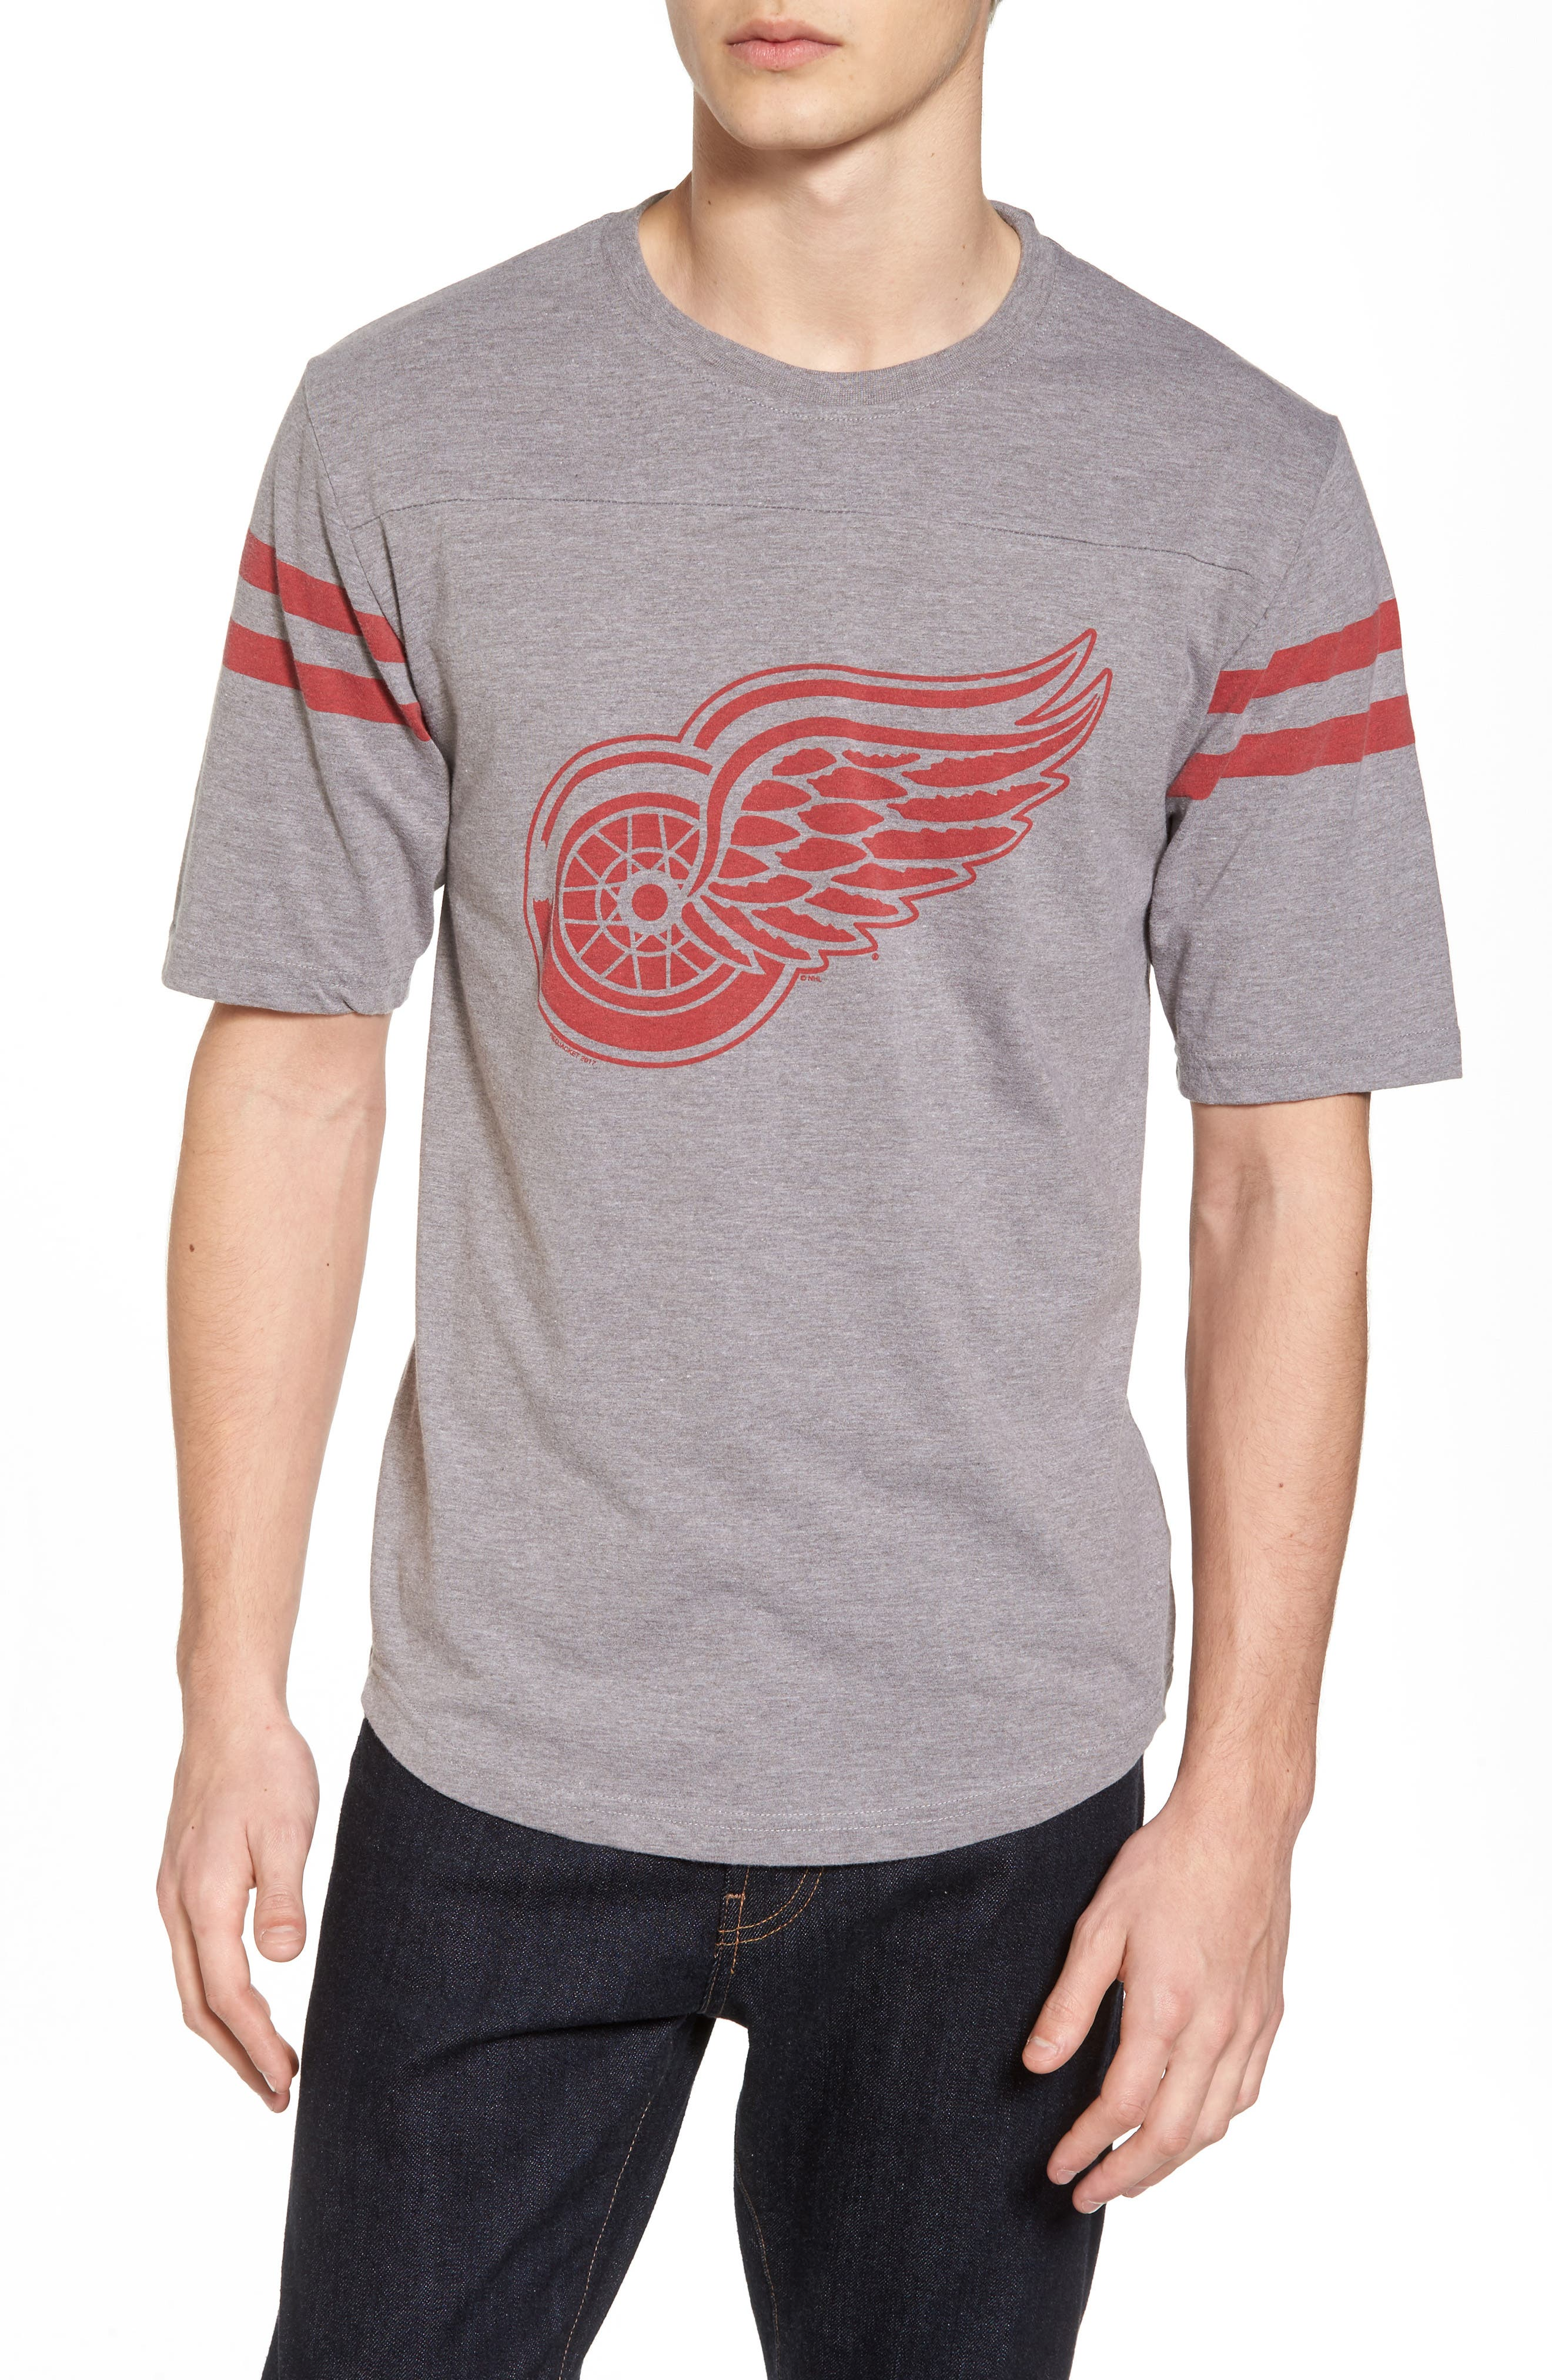 Alternate Image 1 Selected - American Needle Crosby Detroit Red Wings T-Shirt